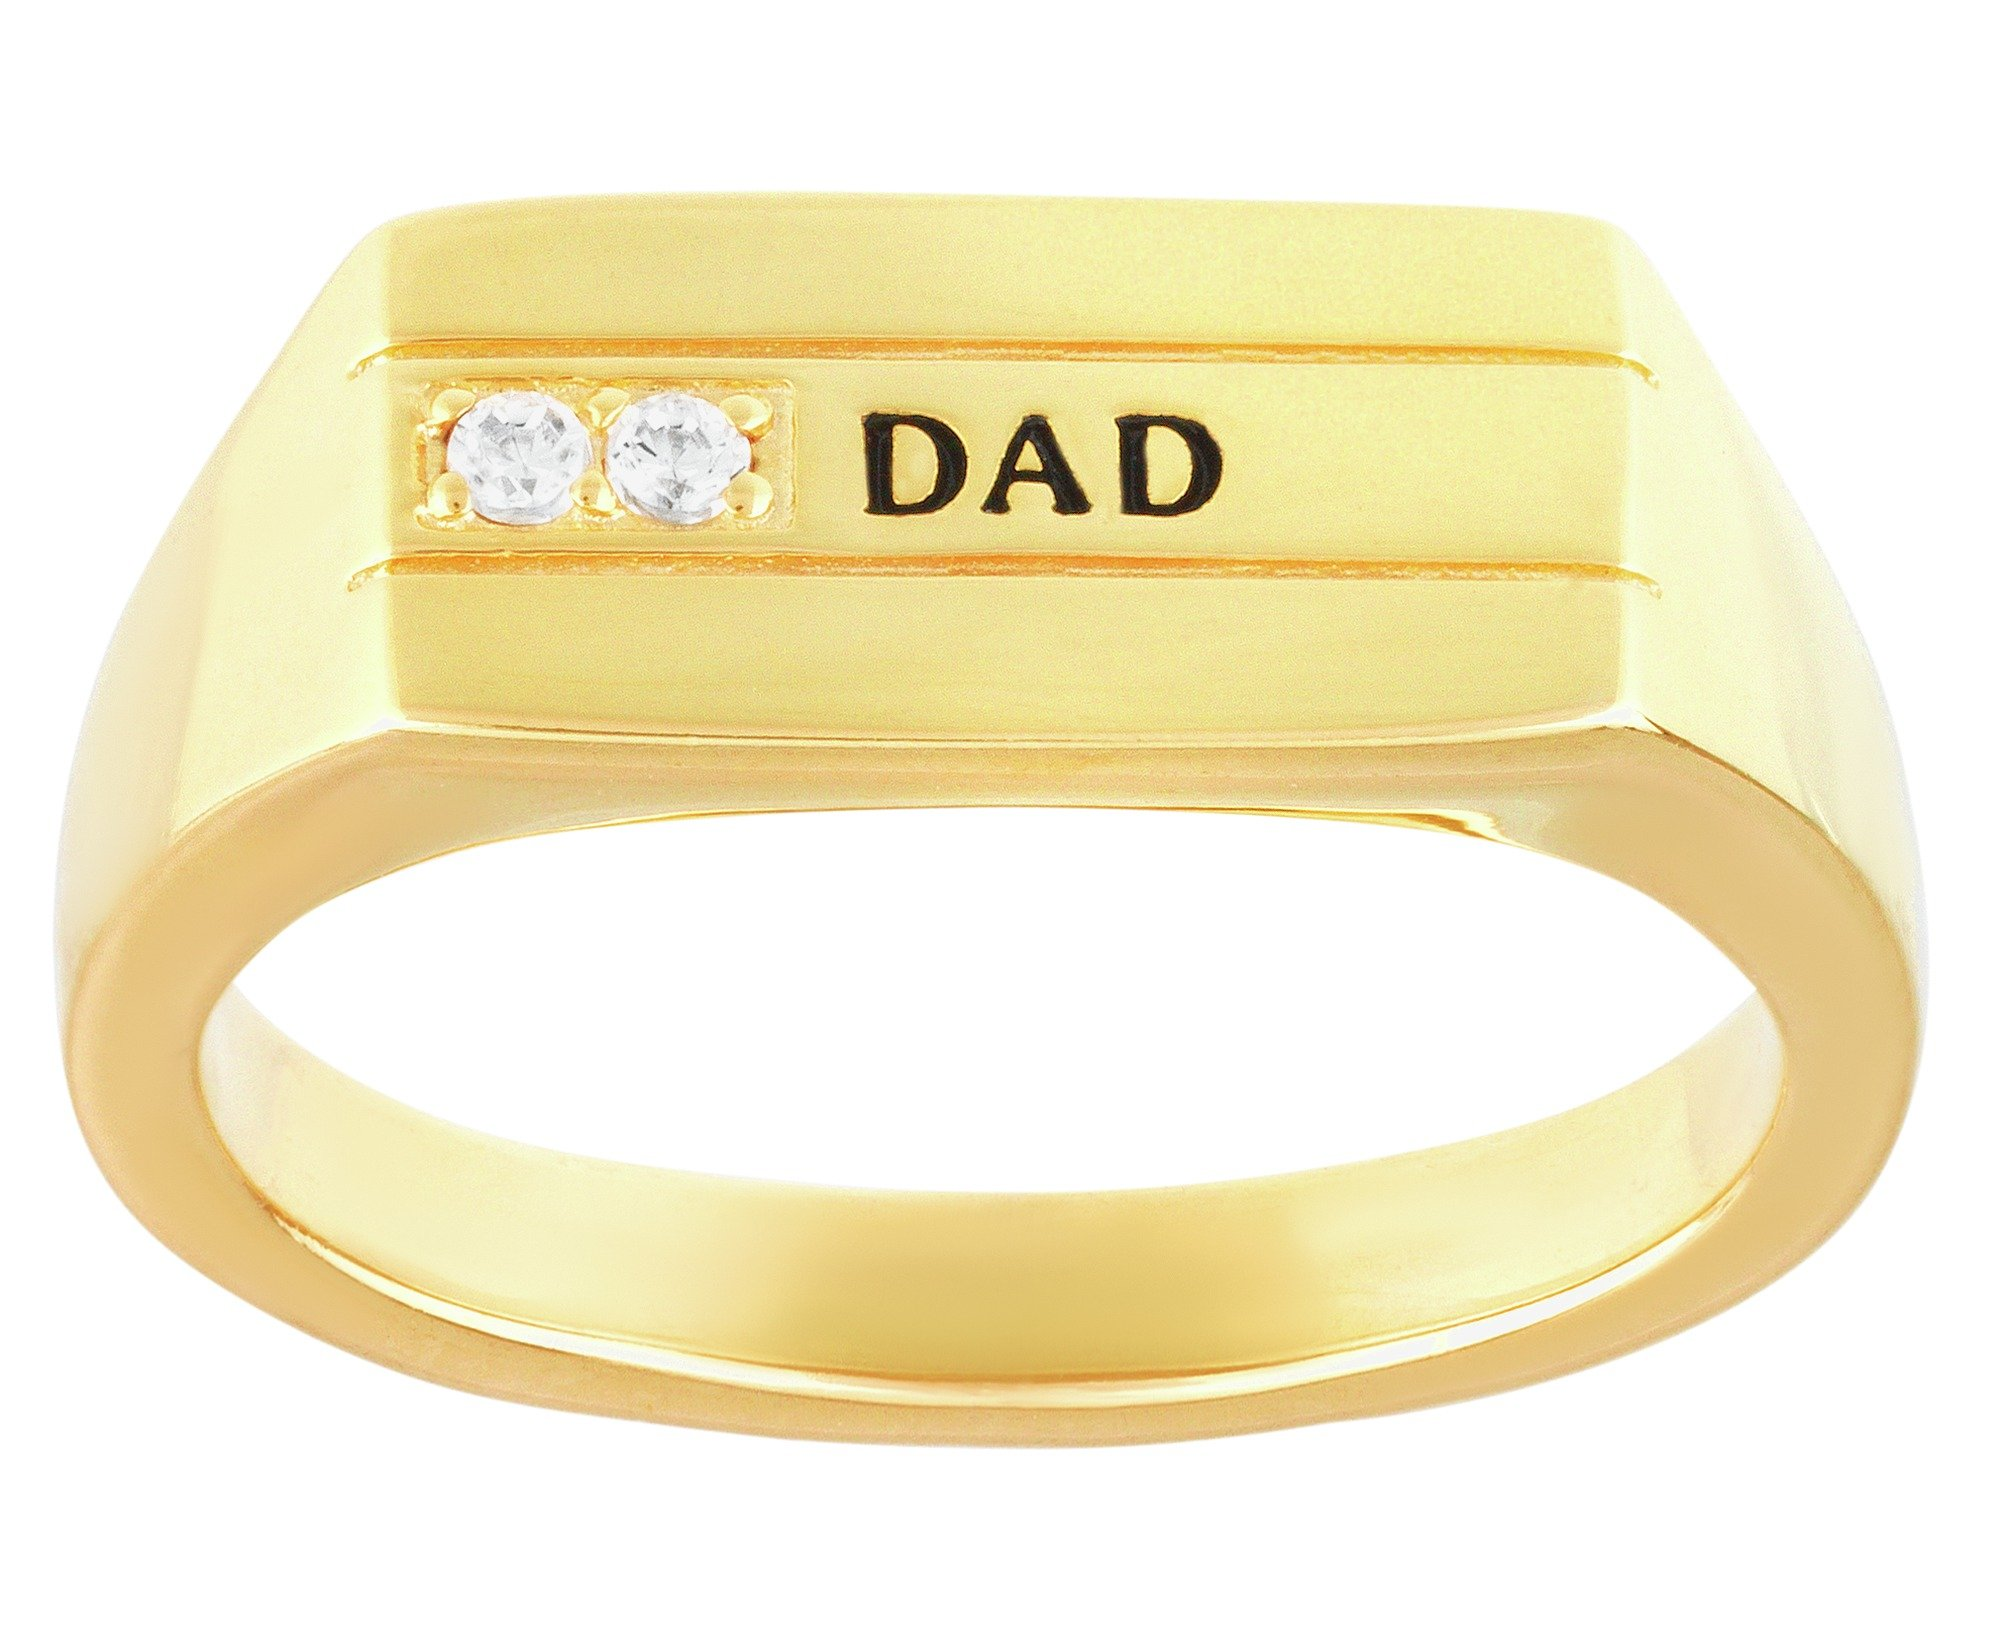 Domain Gents' 9ct Gold Plated Silver Dad Ring Boxed.